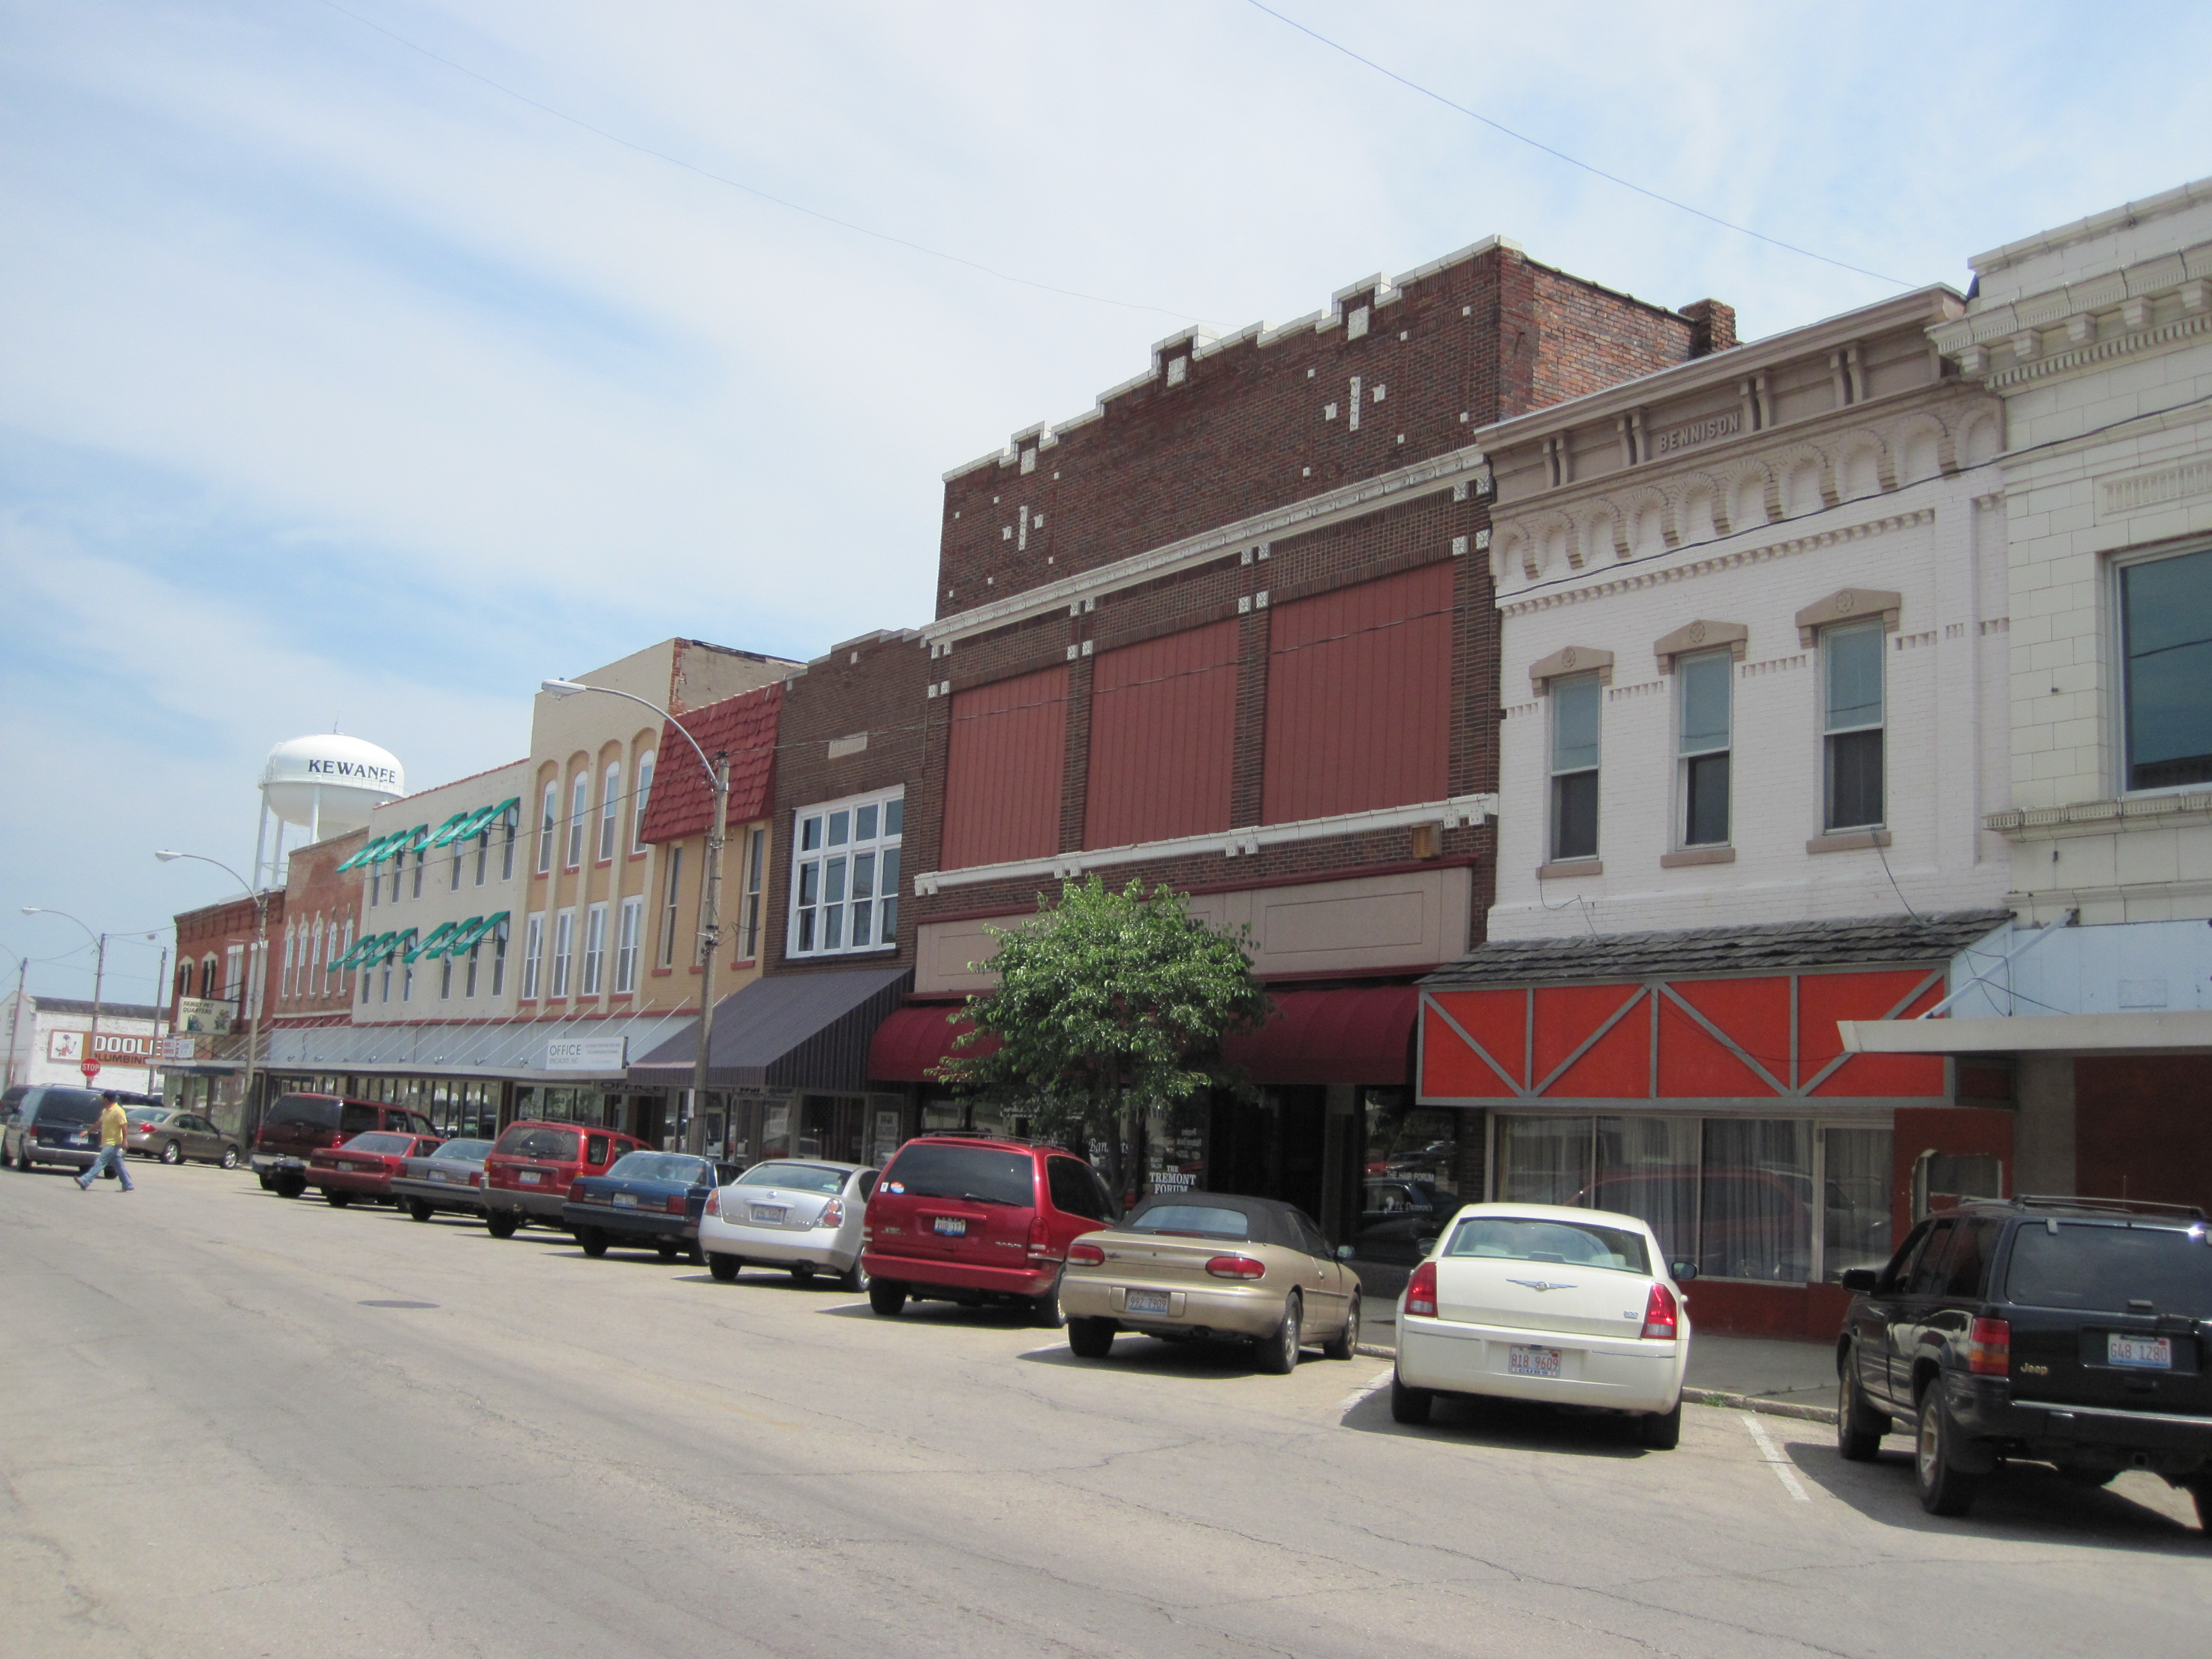 kewanee friendliest small towns